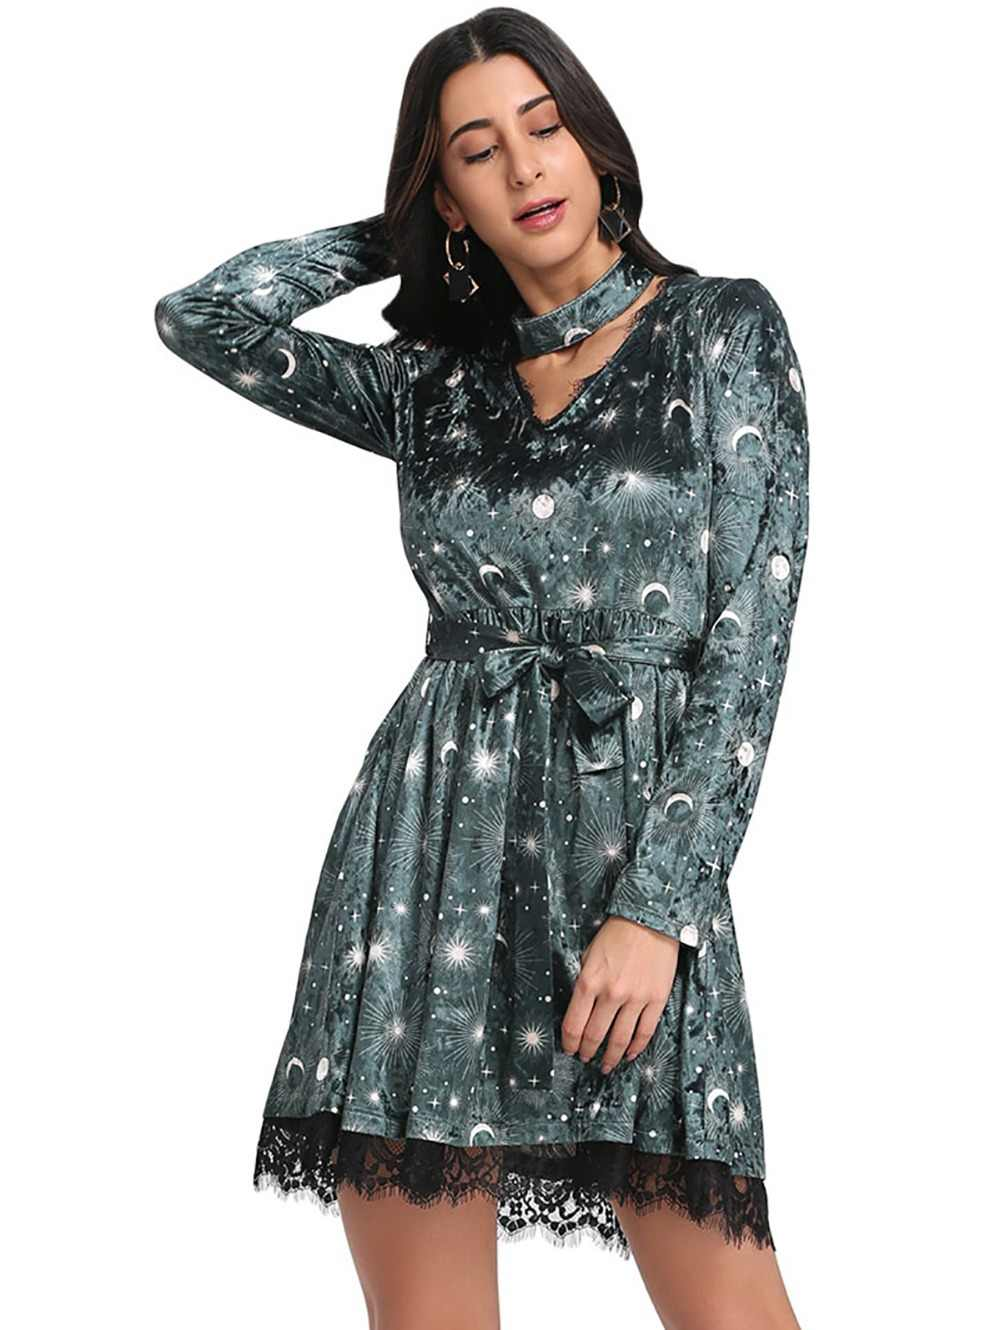 Sovalro  Choker Spliced Lace Belted Moon Star Print Women Velour Dress Sexy V Neck Long Sleeve Spring Autumn Girl A Line Dress